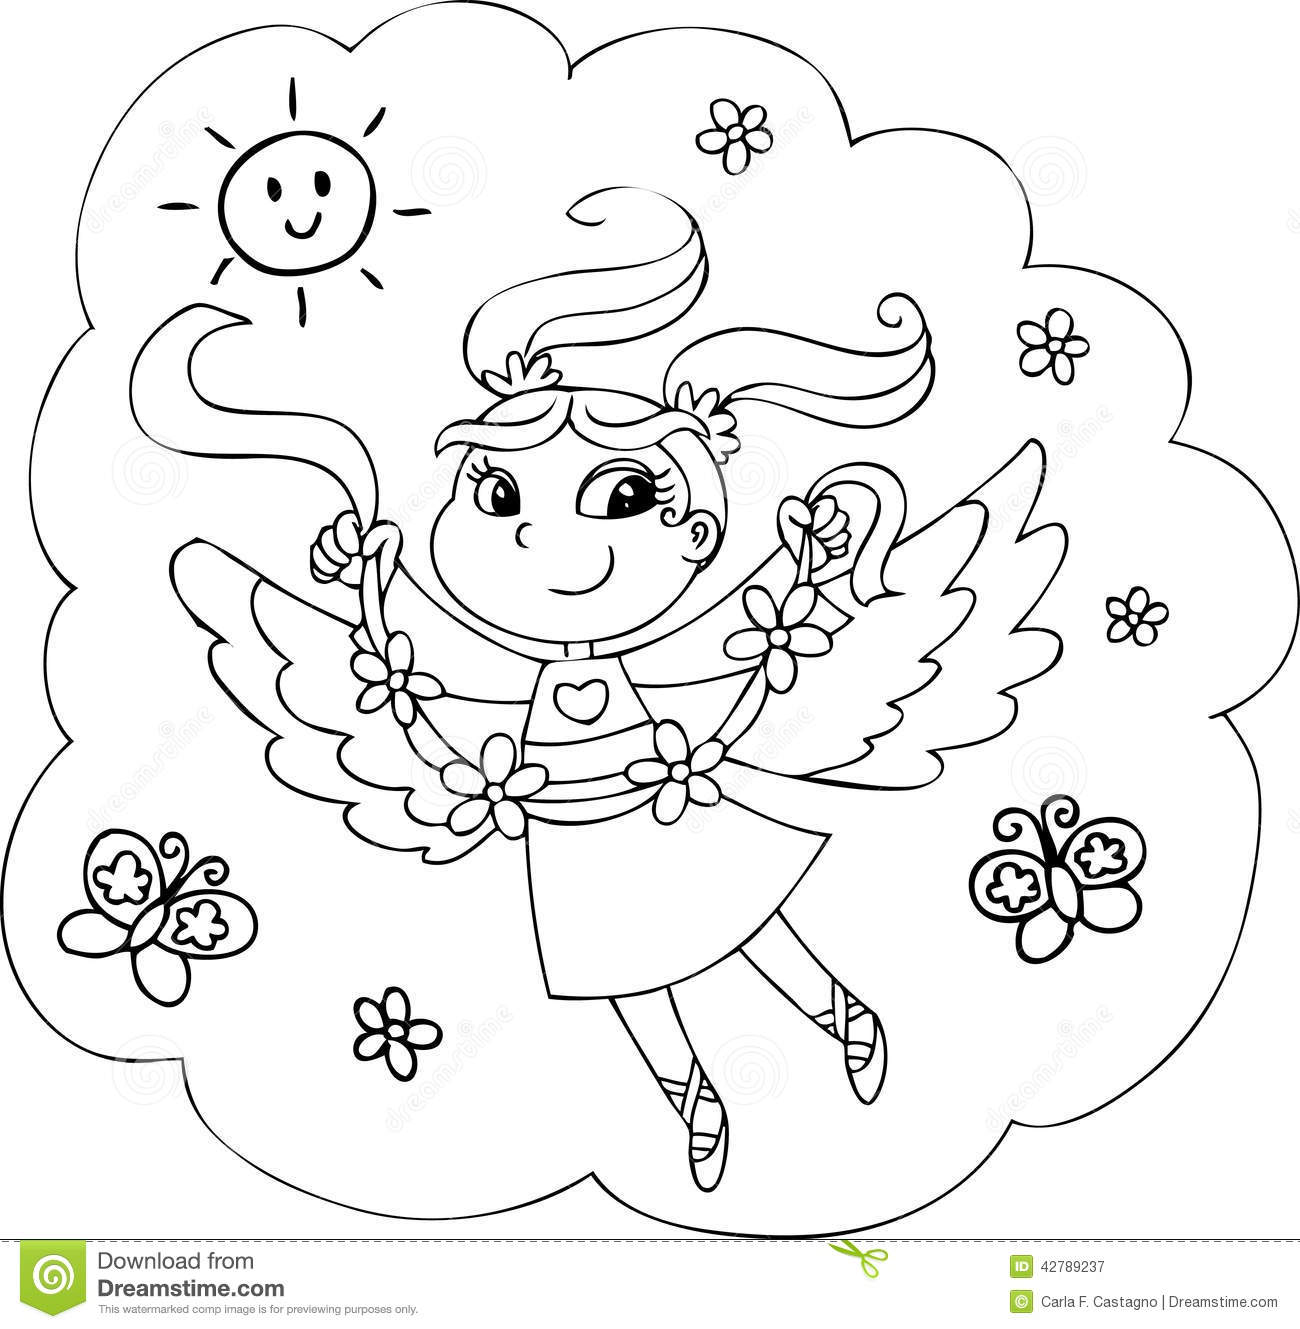 Coloring rainbow fairy girl stock illustration image for Rainbow magic fairy coloring pages